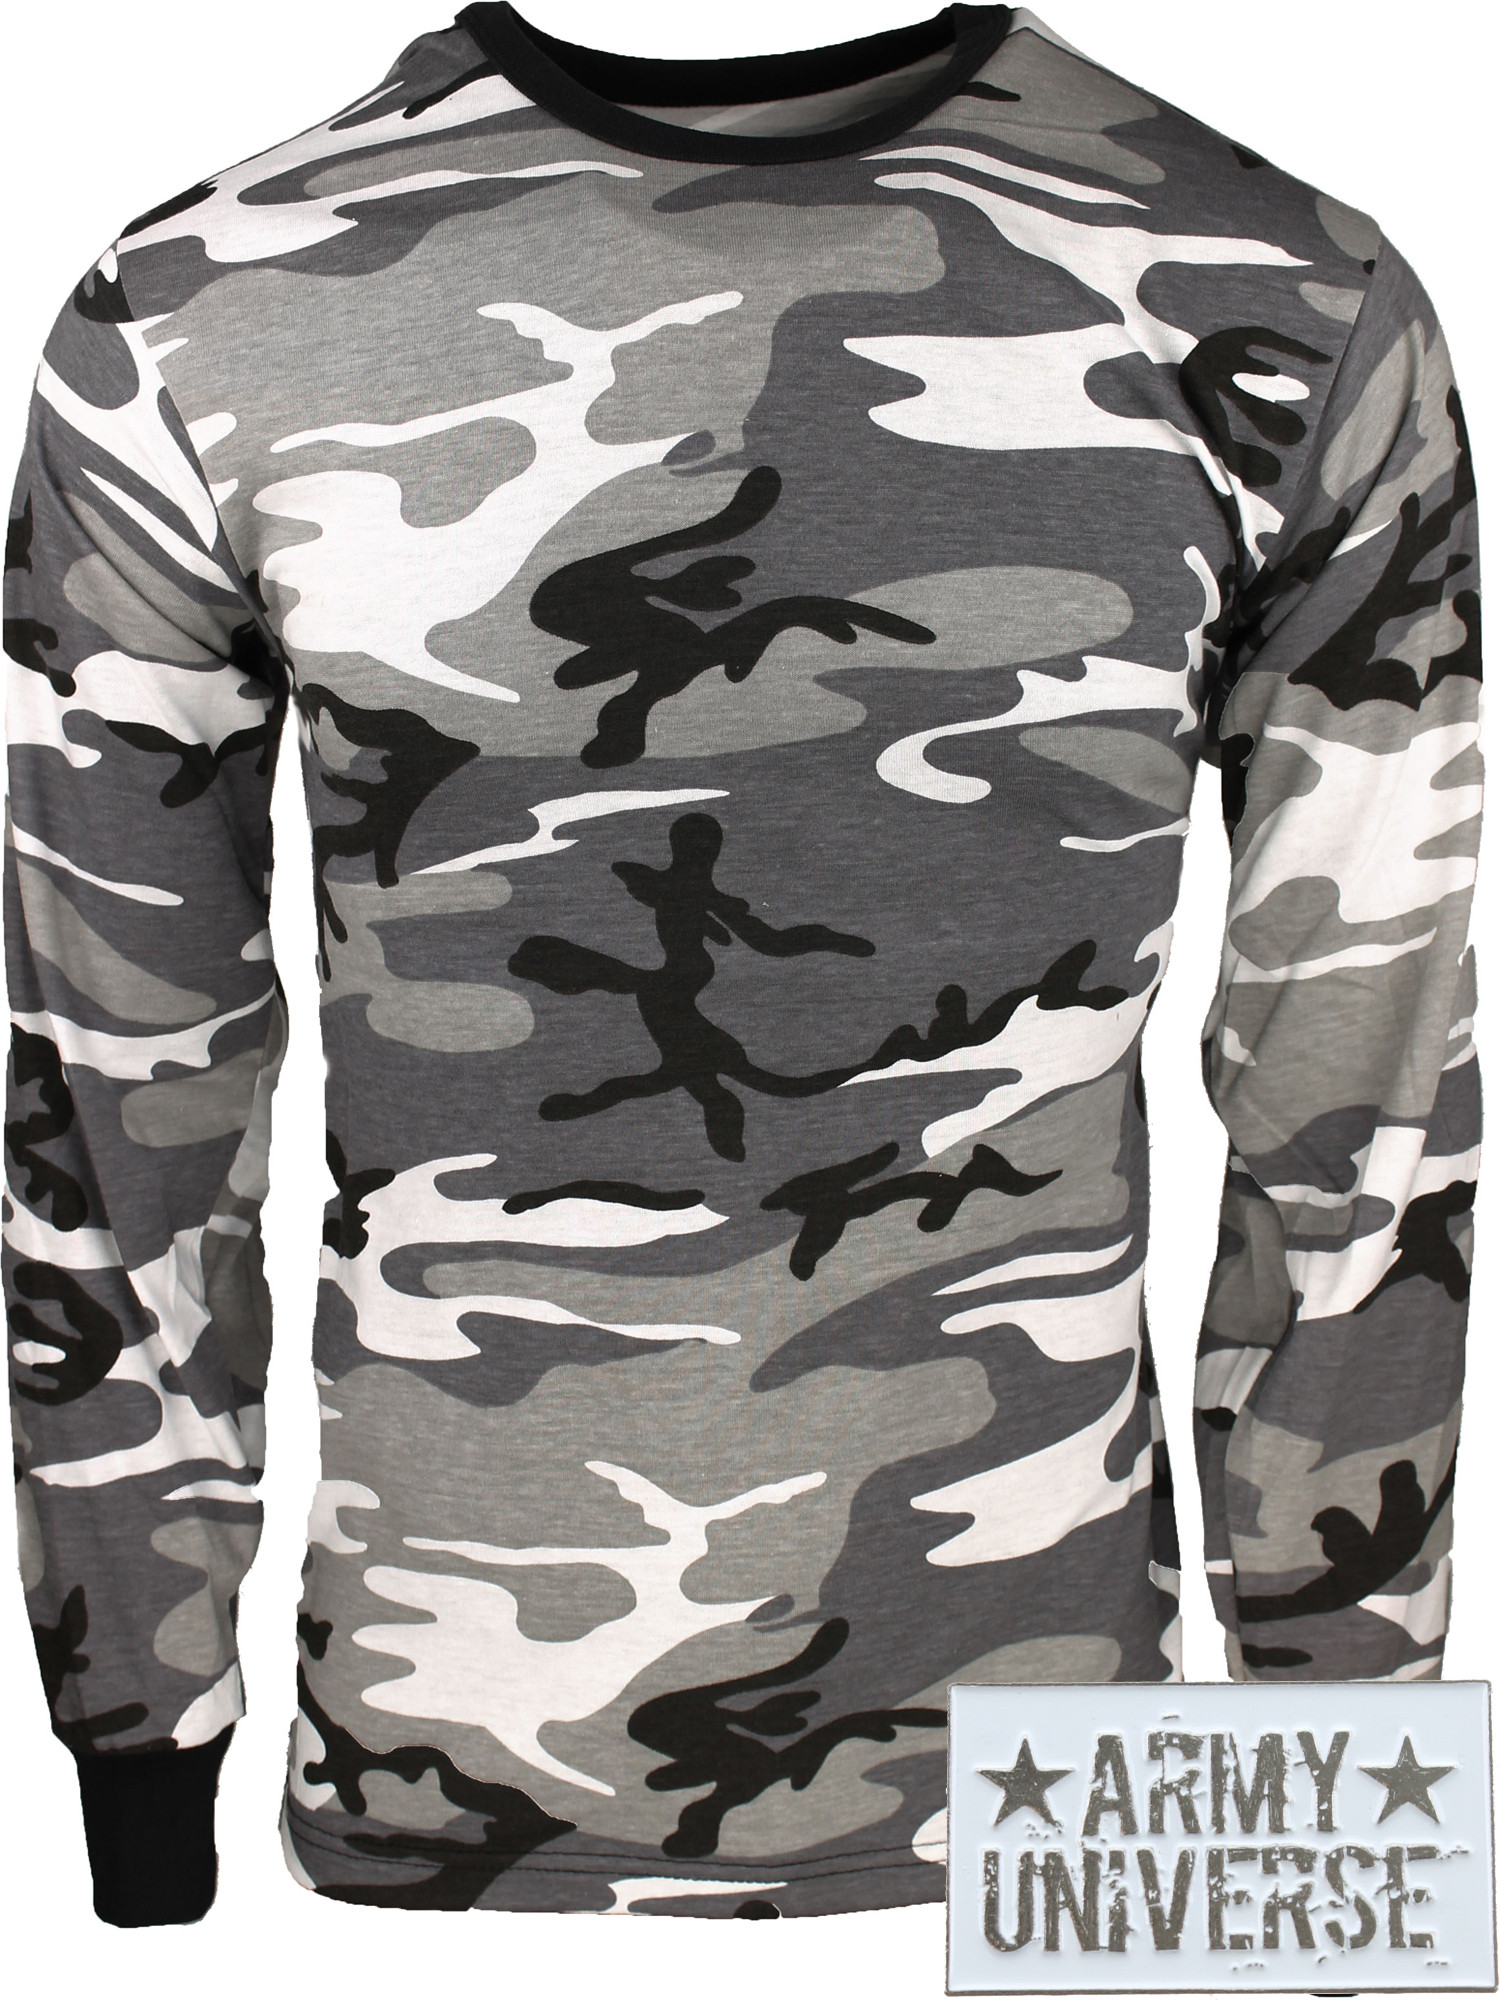 ... City Camouflage Military Crewneck Long Sleeve T Shirt w  ArmyUniverse®  Pin ... 519d36192